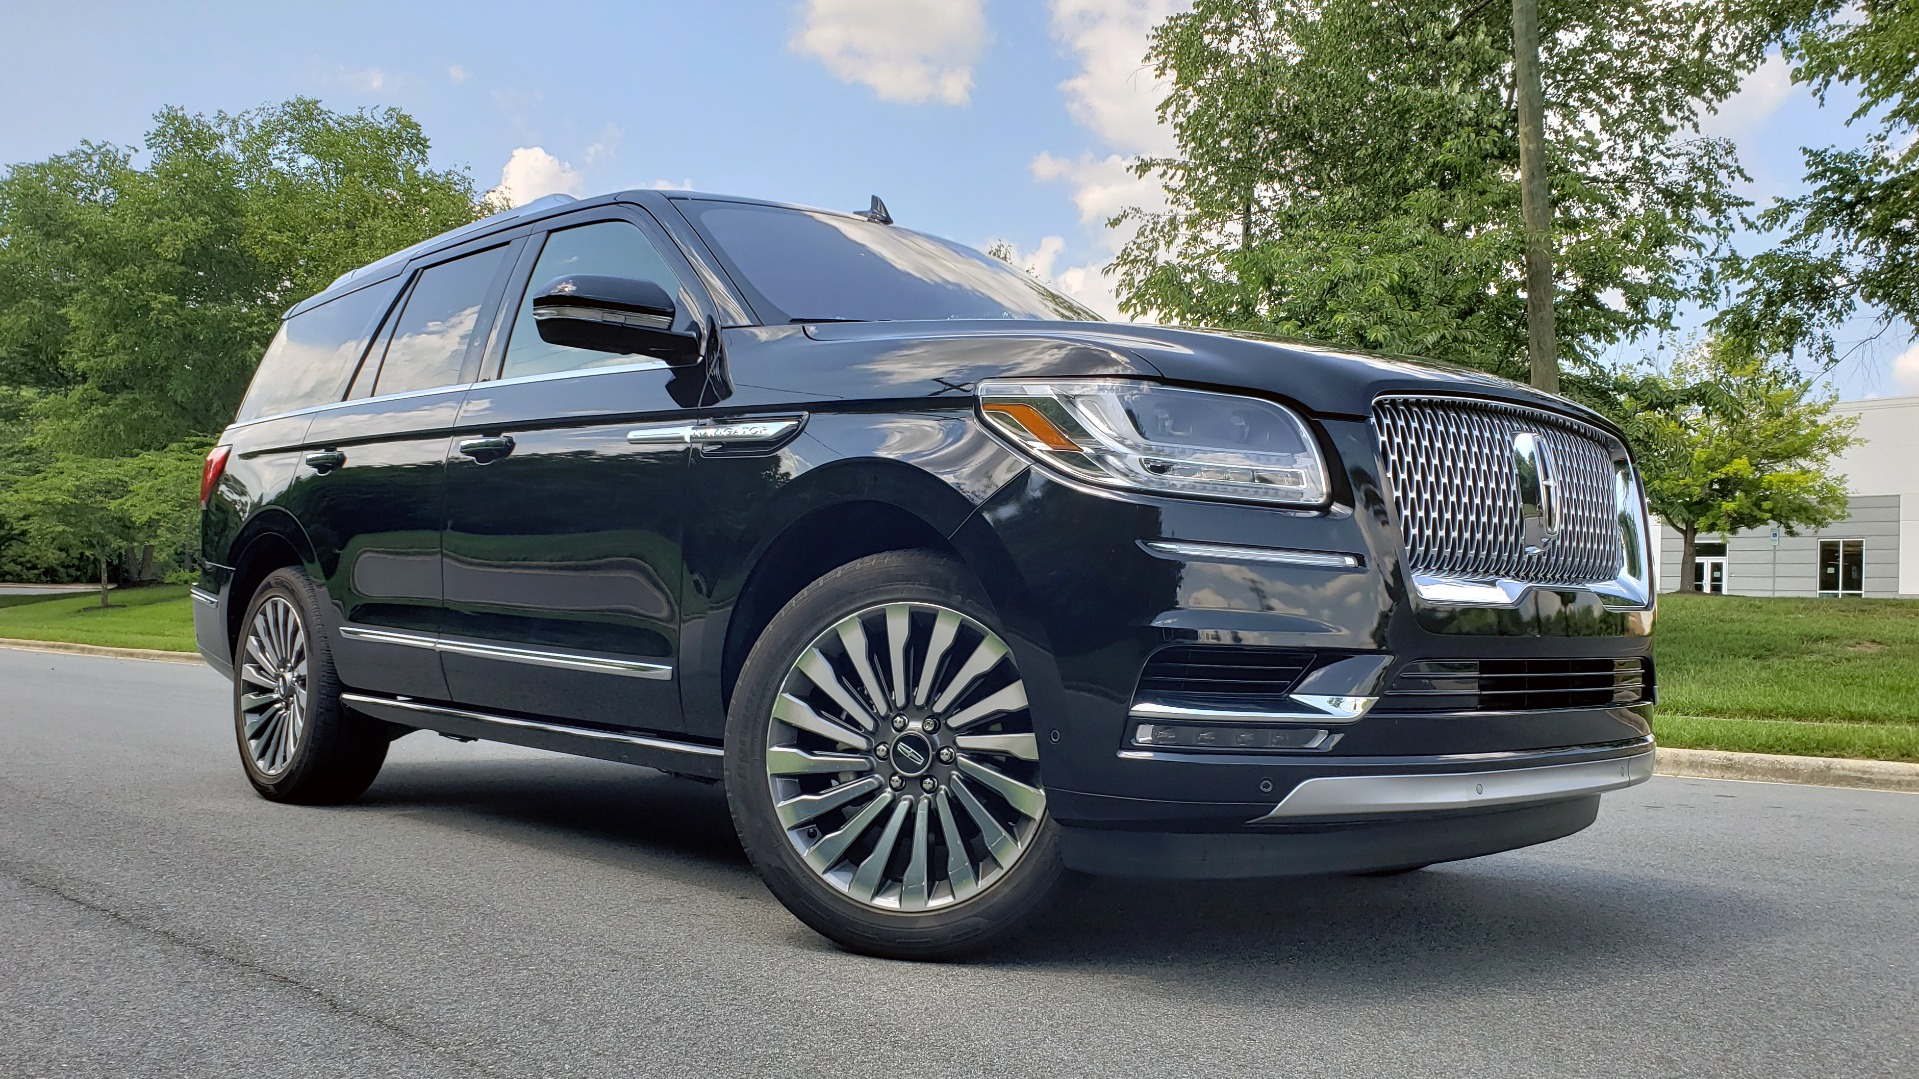 Used 2019 Lincoln NAVIGATOR RESERVE 4X4 / NAV / PANO-ROOF / REVEL ULTIMA AUDIO / 3-ROW / REARVIEW for sale $74,795 at Formula Imports in Charlotte NC 28227 102